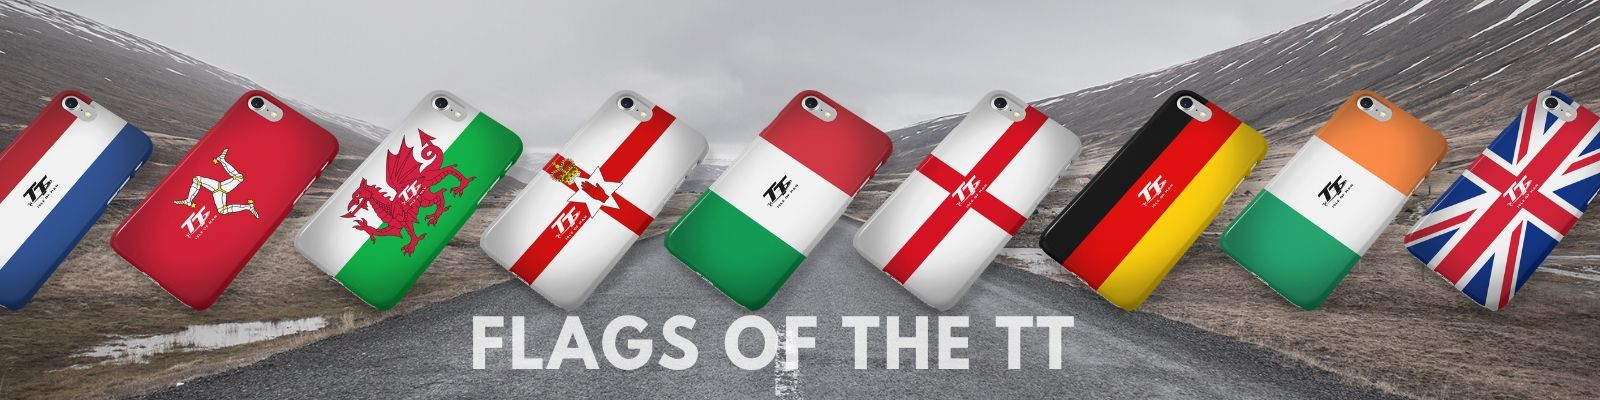 Flags of the TT Category Banner